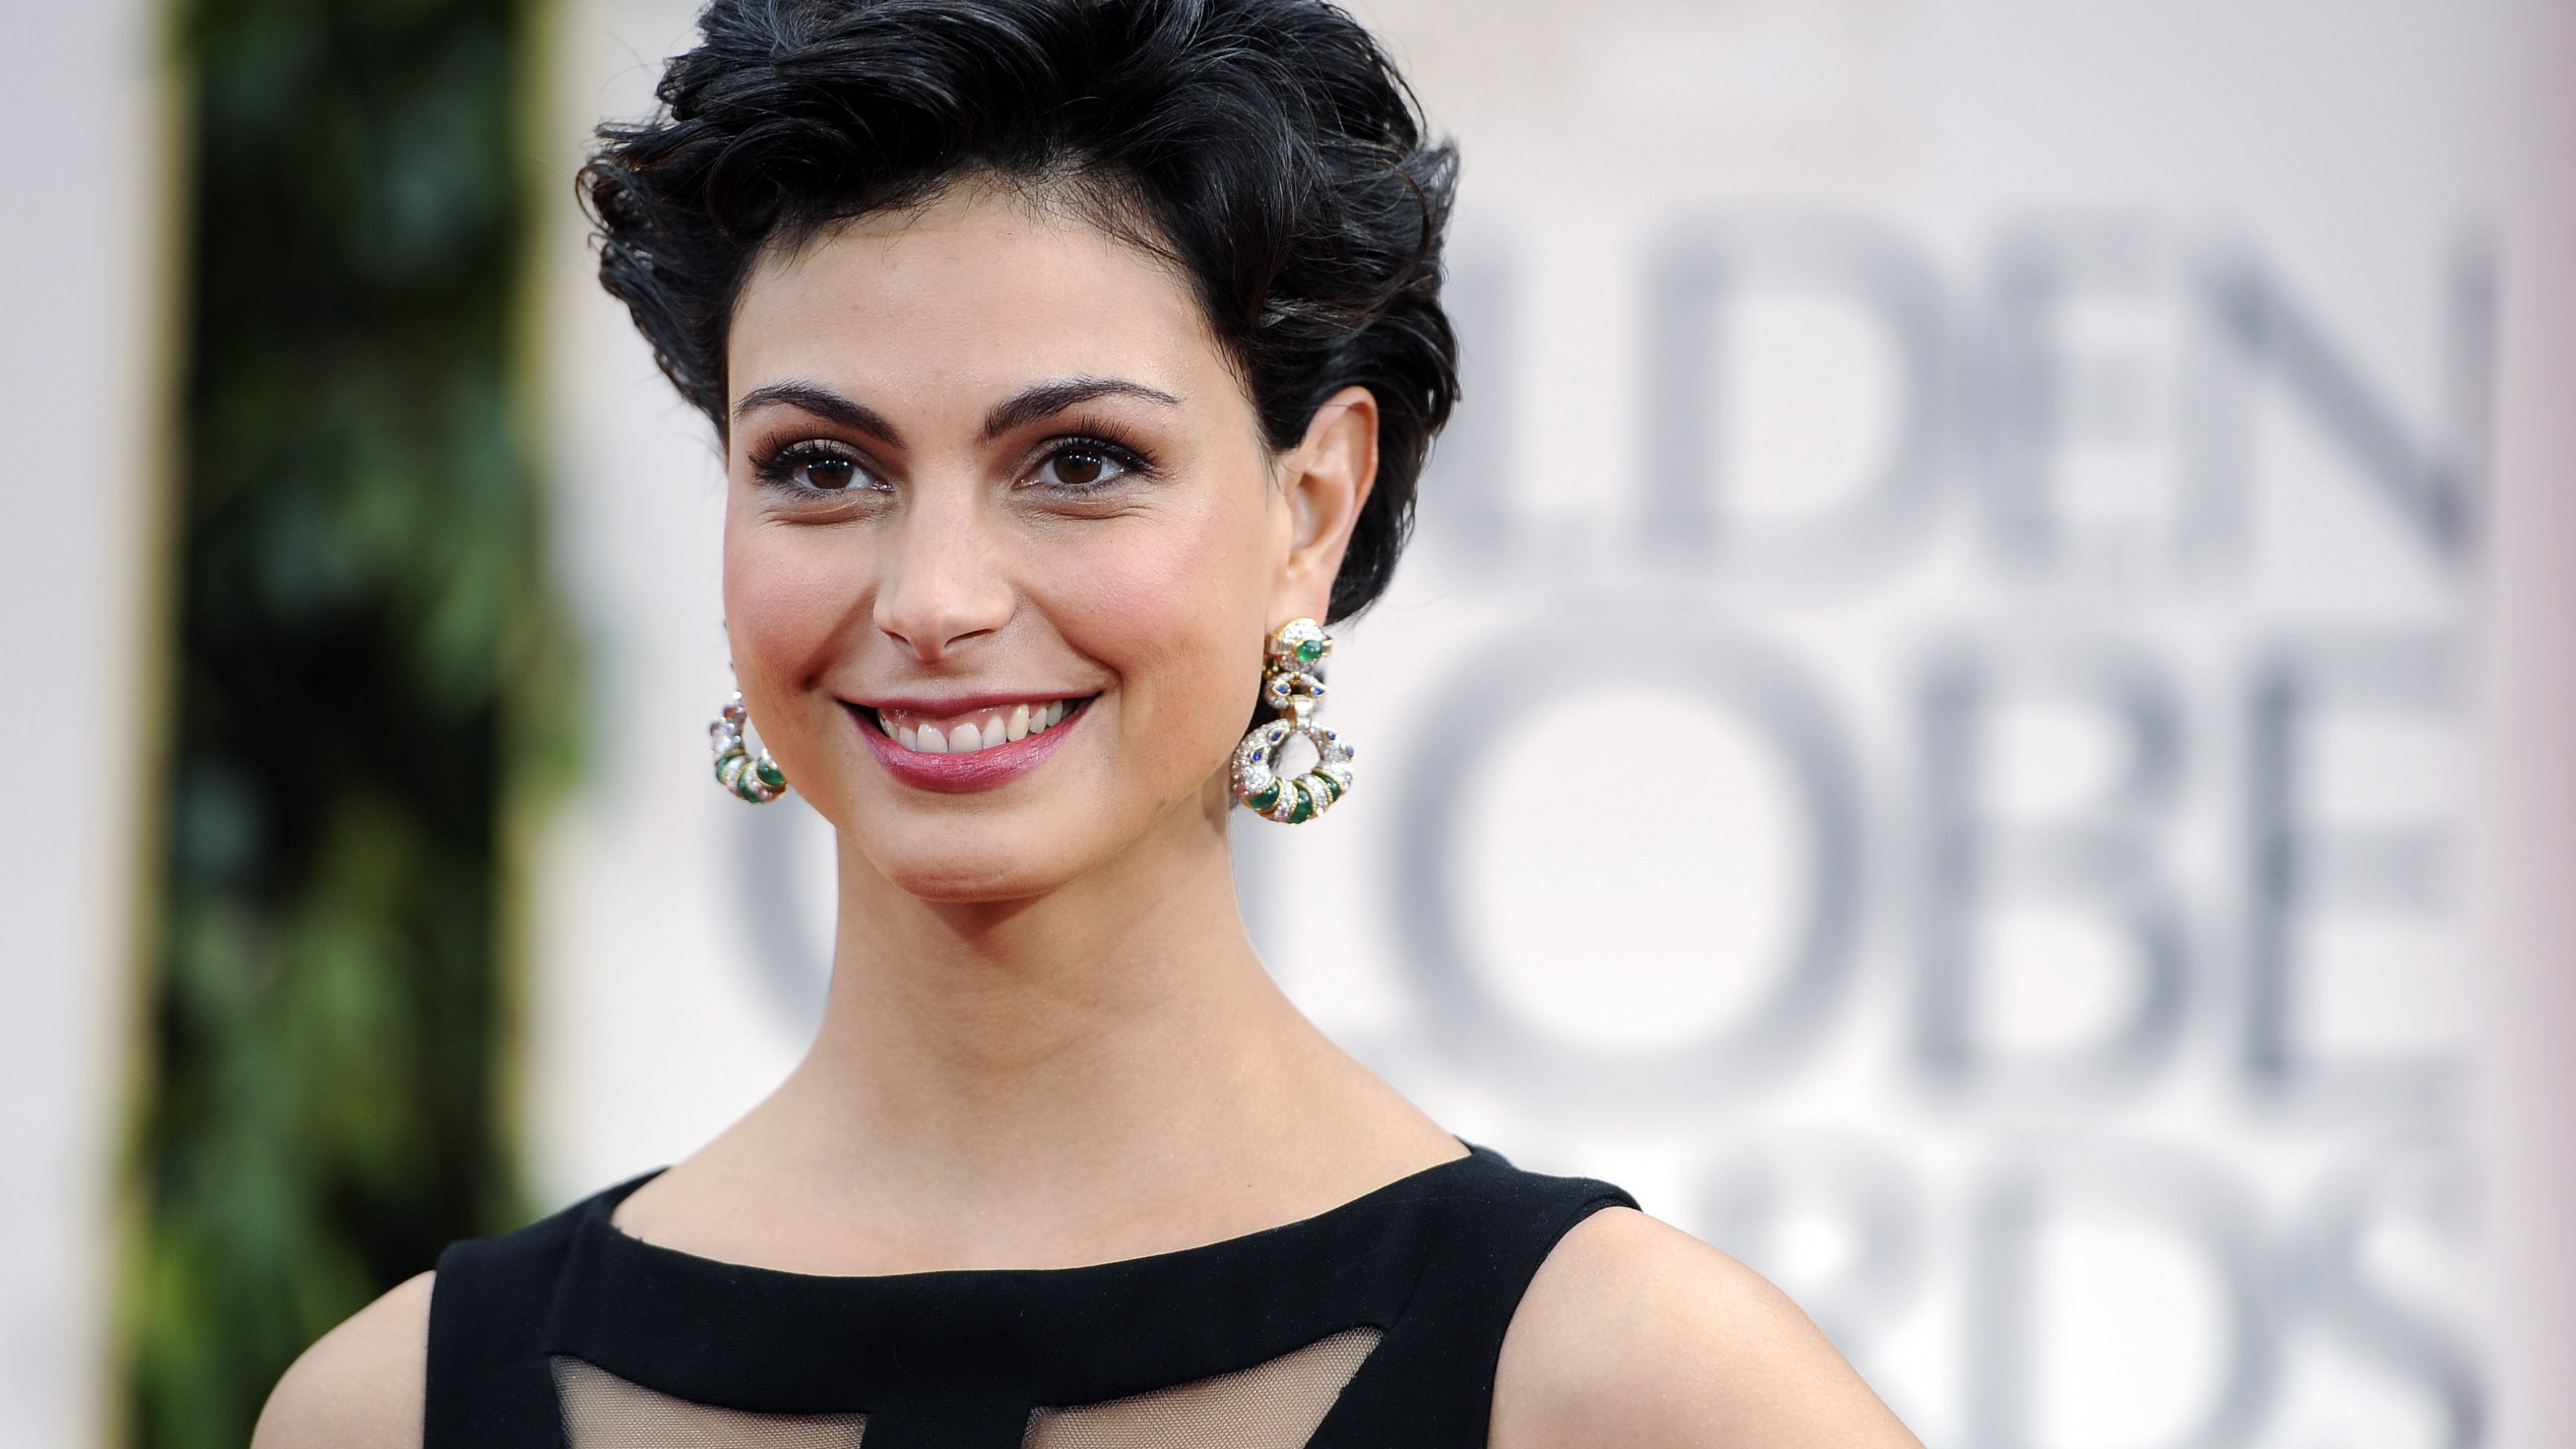 Celebrites Morena Baccarin nude photos 2019